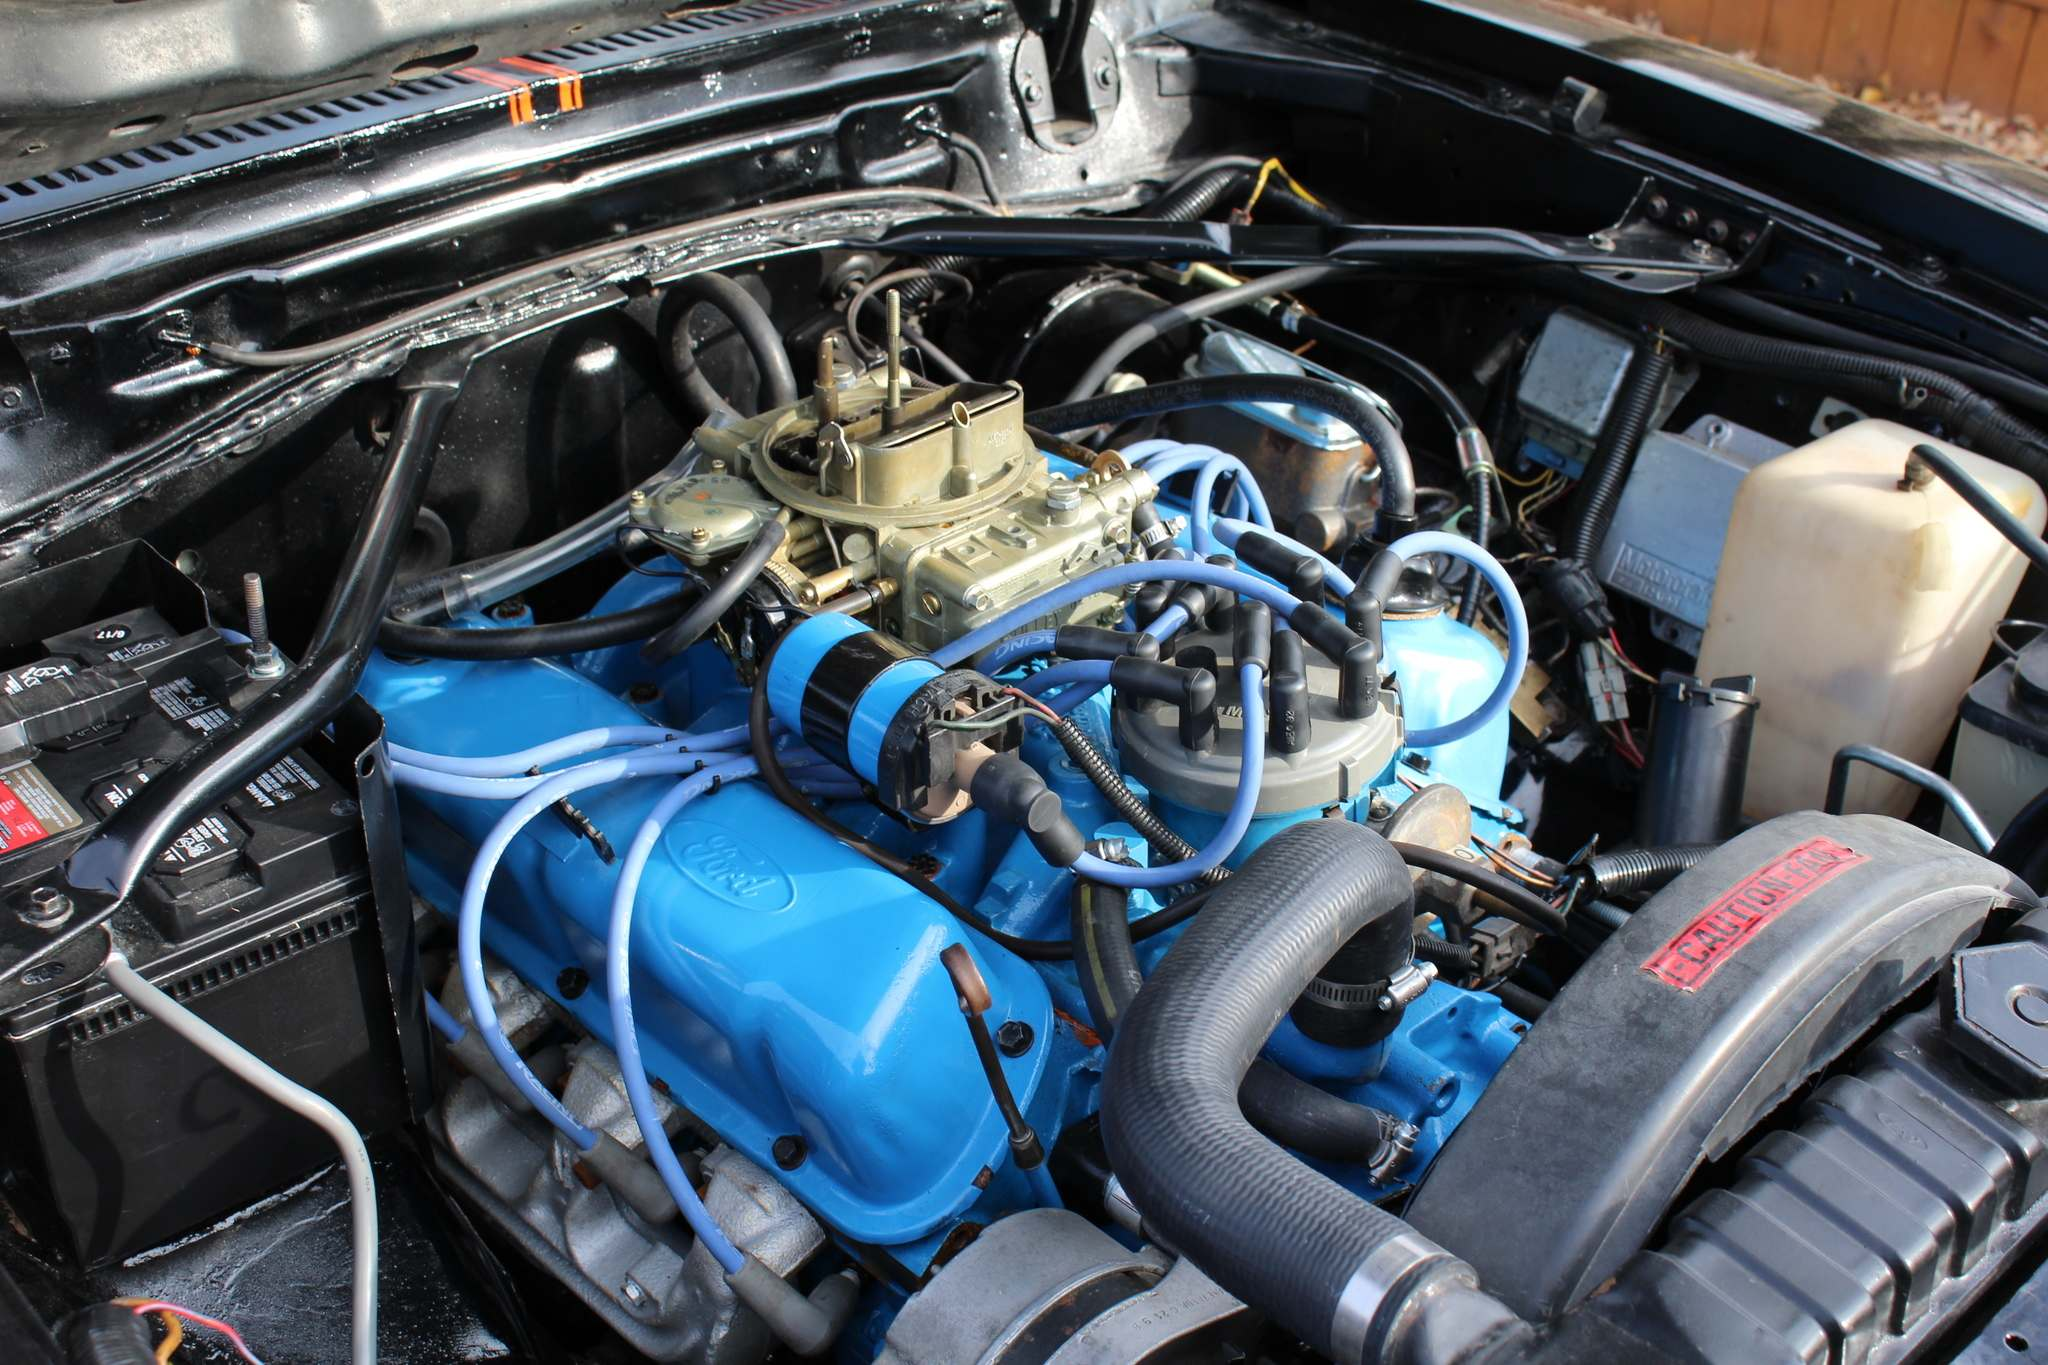 The 5.0 V-8 was rebuilt and a number of performance parts were added to boost horsepower.